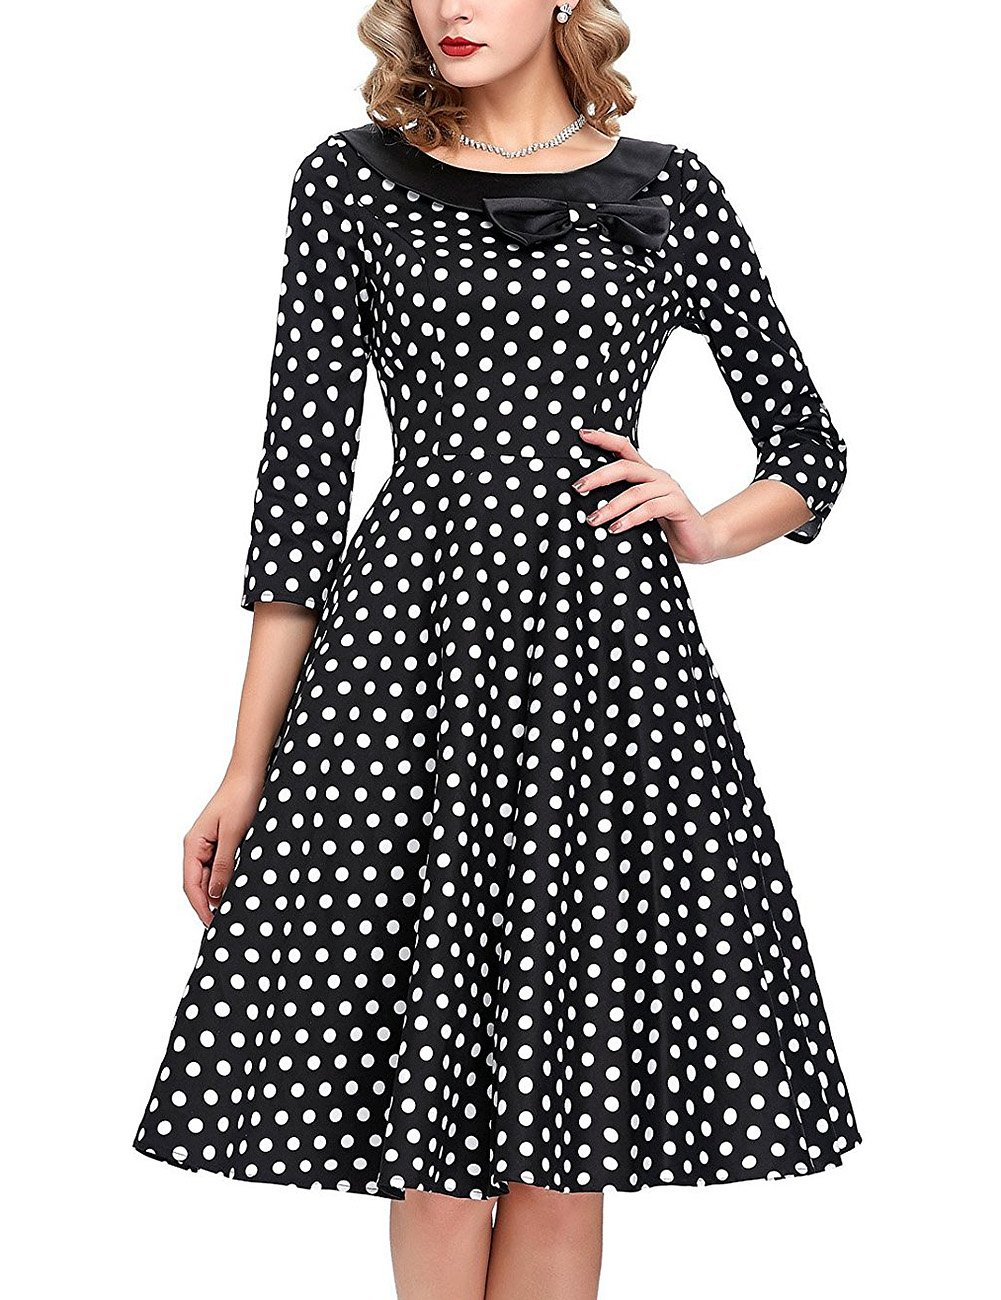 GlorySunshine Women's Vintage Swing Polka Dot Dress 2